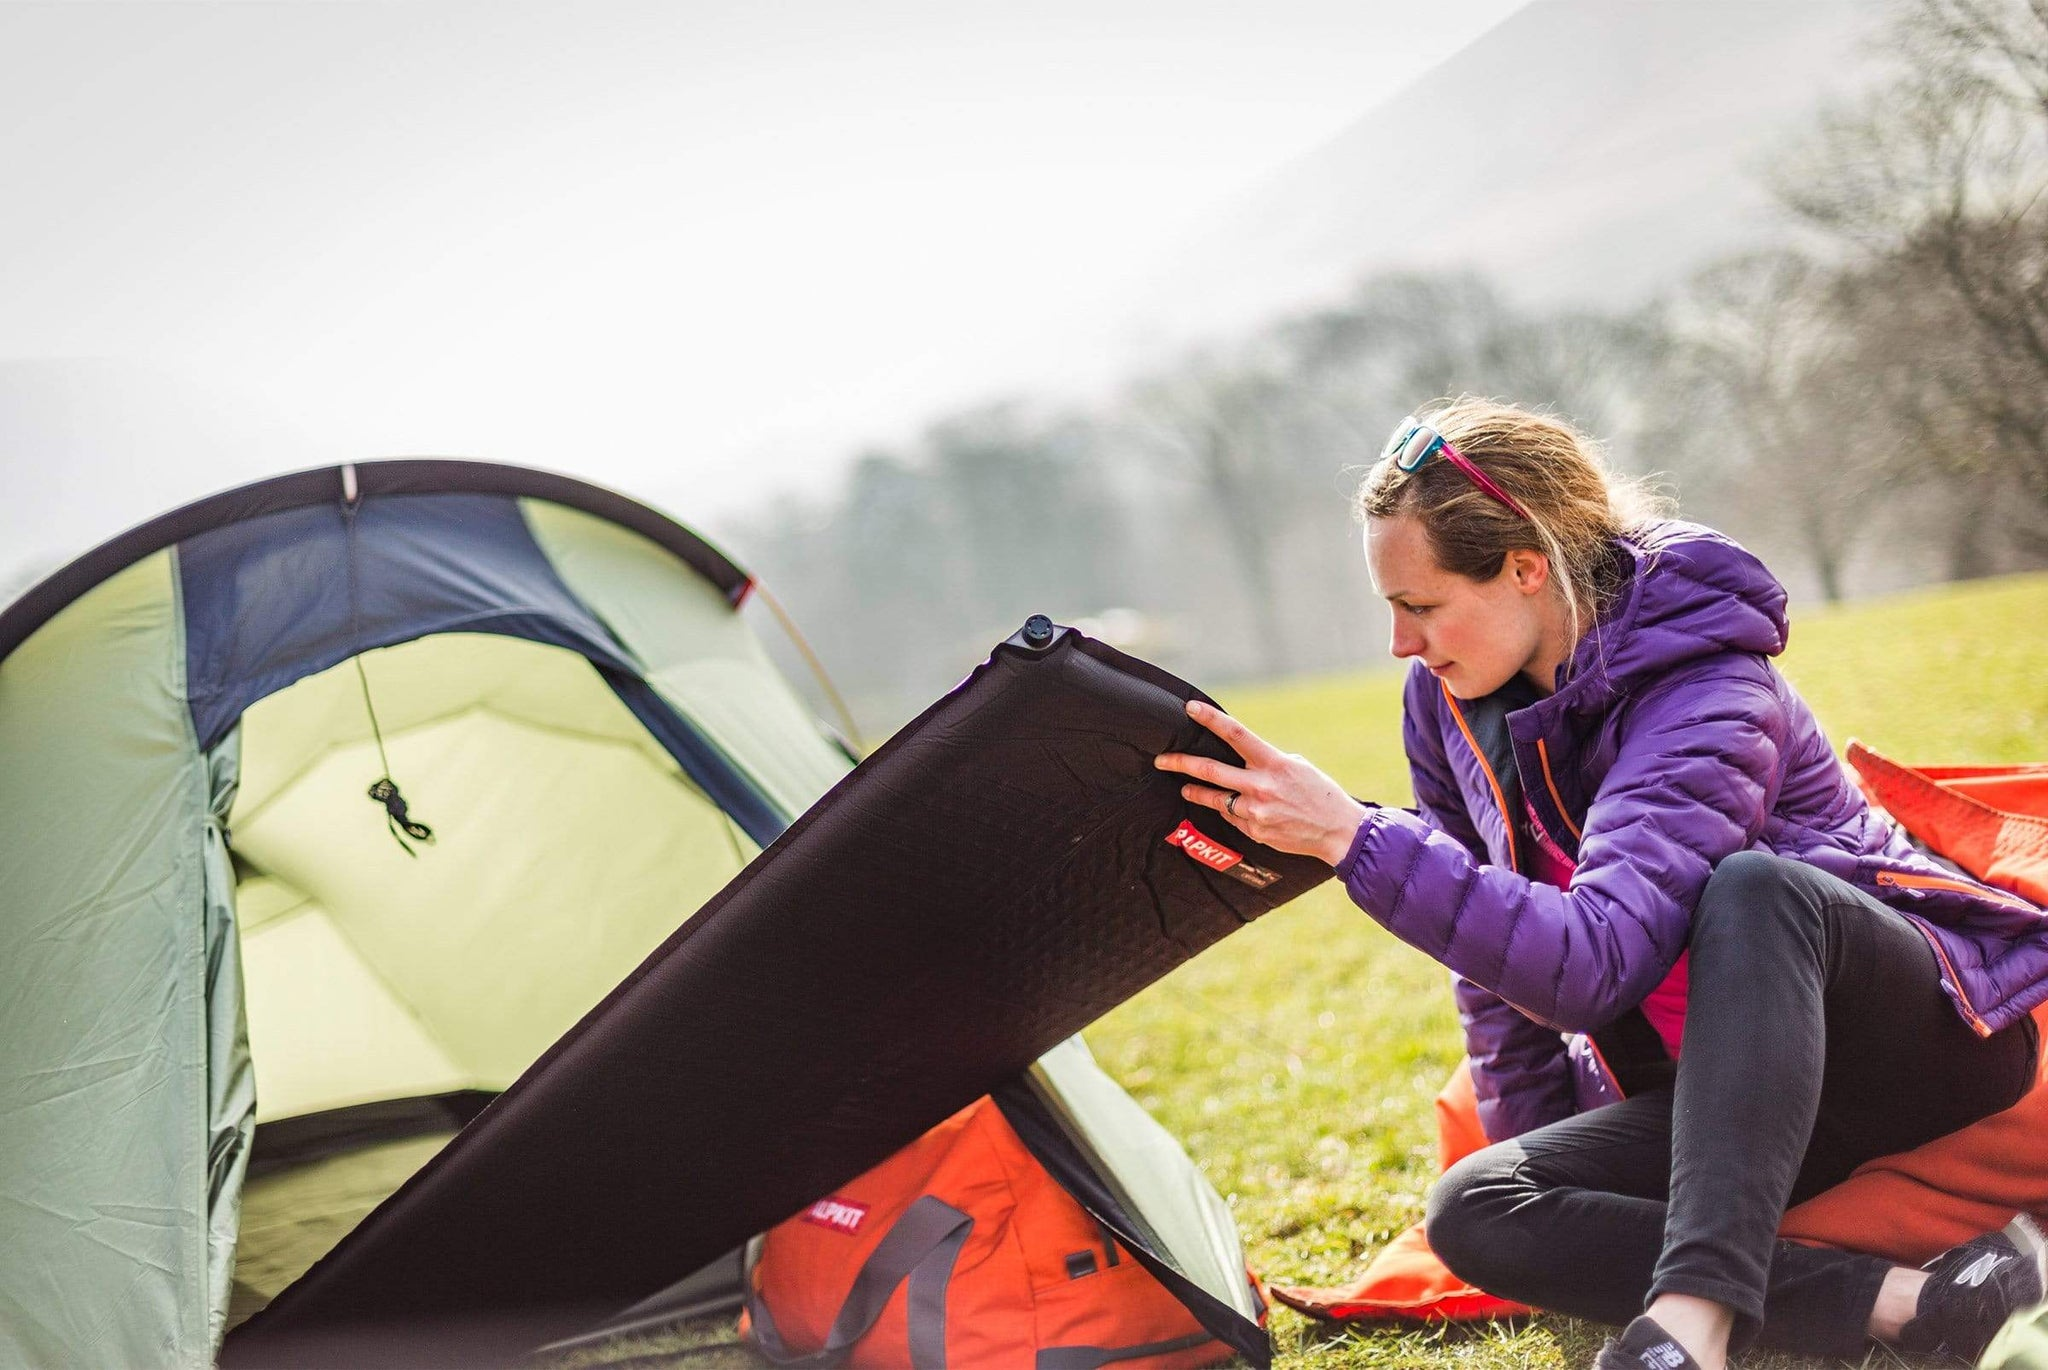 Pushing a Dirtbag self-inflating sleeping mat into the tent in the Peak District